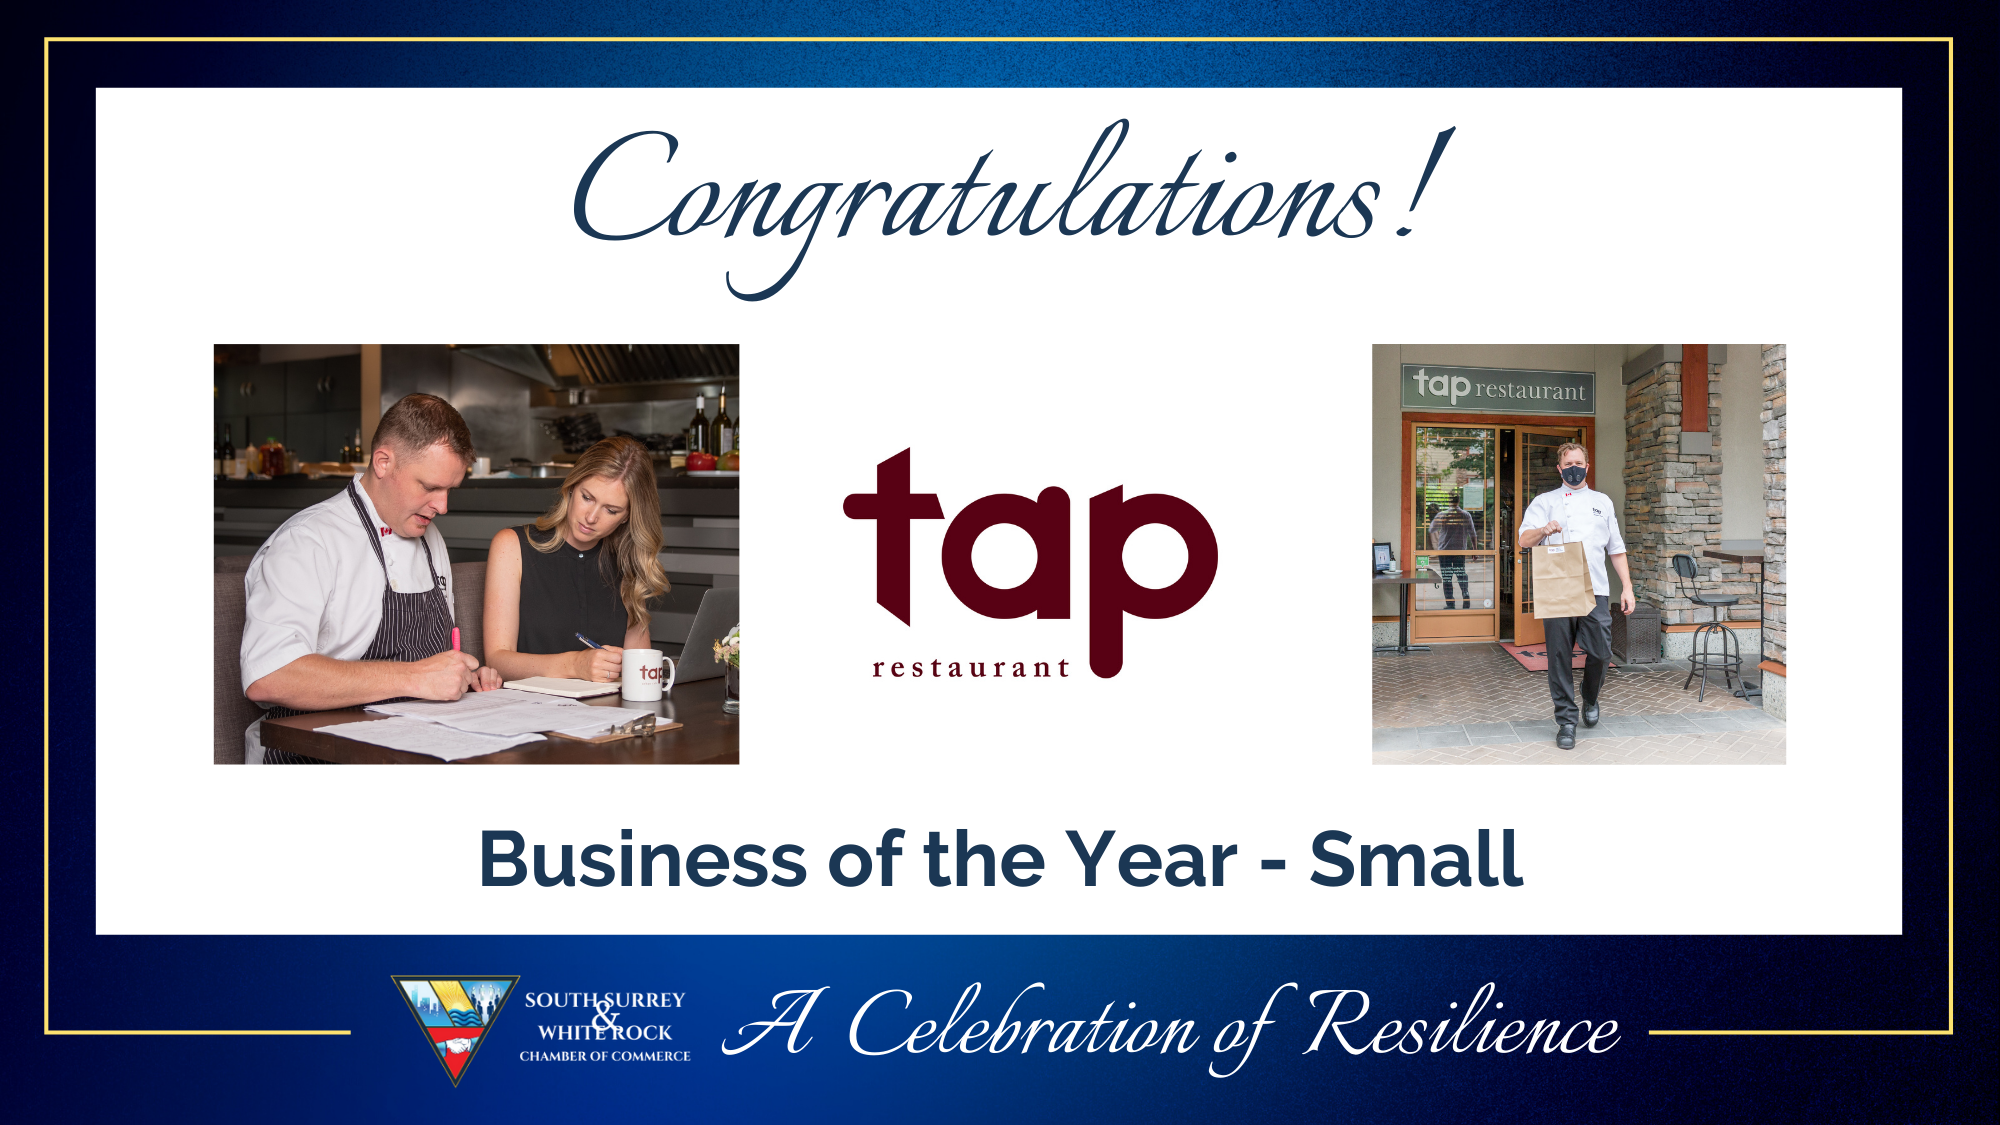 Congratulations-Business-of-the-Year-Small.png